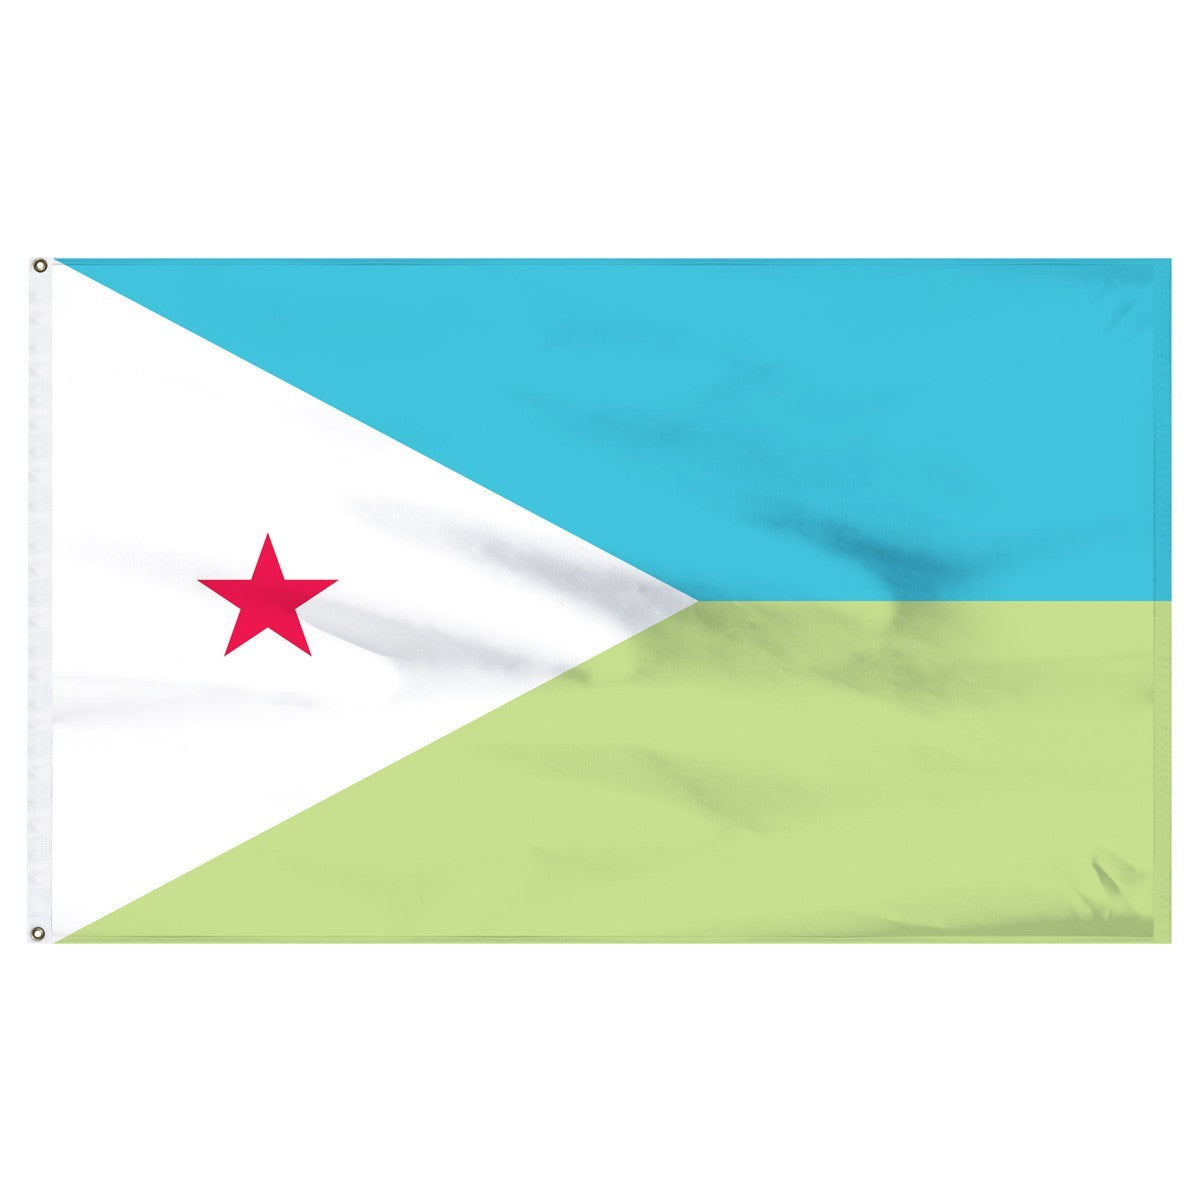 Djibouti 5' x 8' Outdoor Nylon Flag